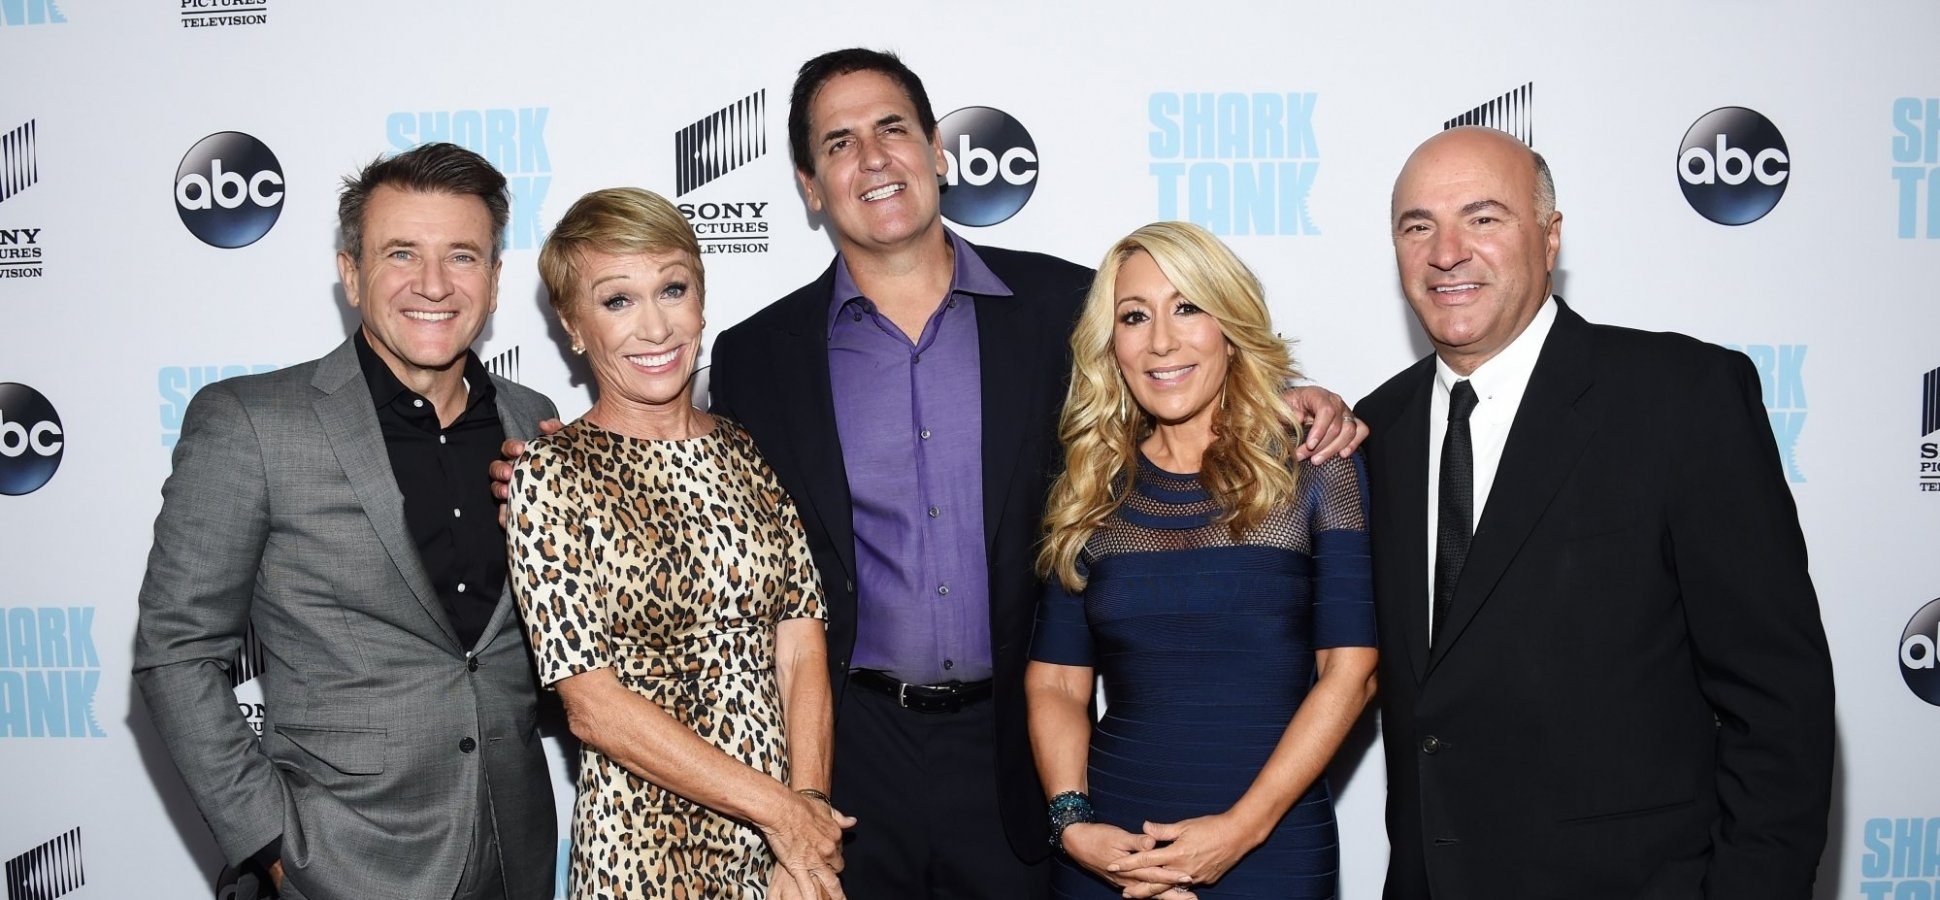 American Entrepreneurship Is Declining. Here's Why 'Shark Tank' Is to Blame | Inc.com